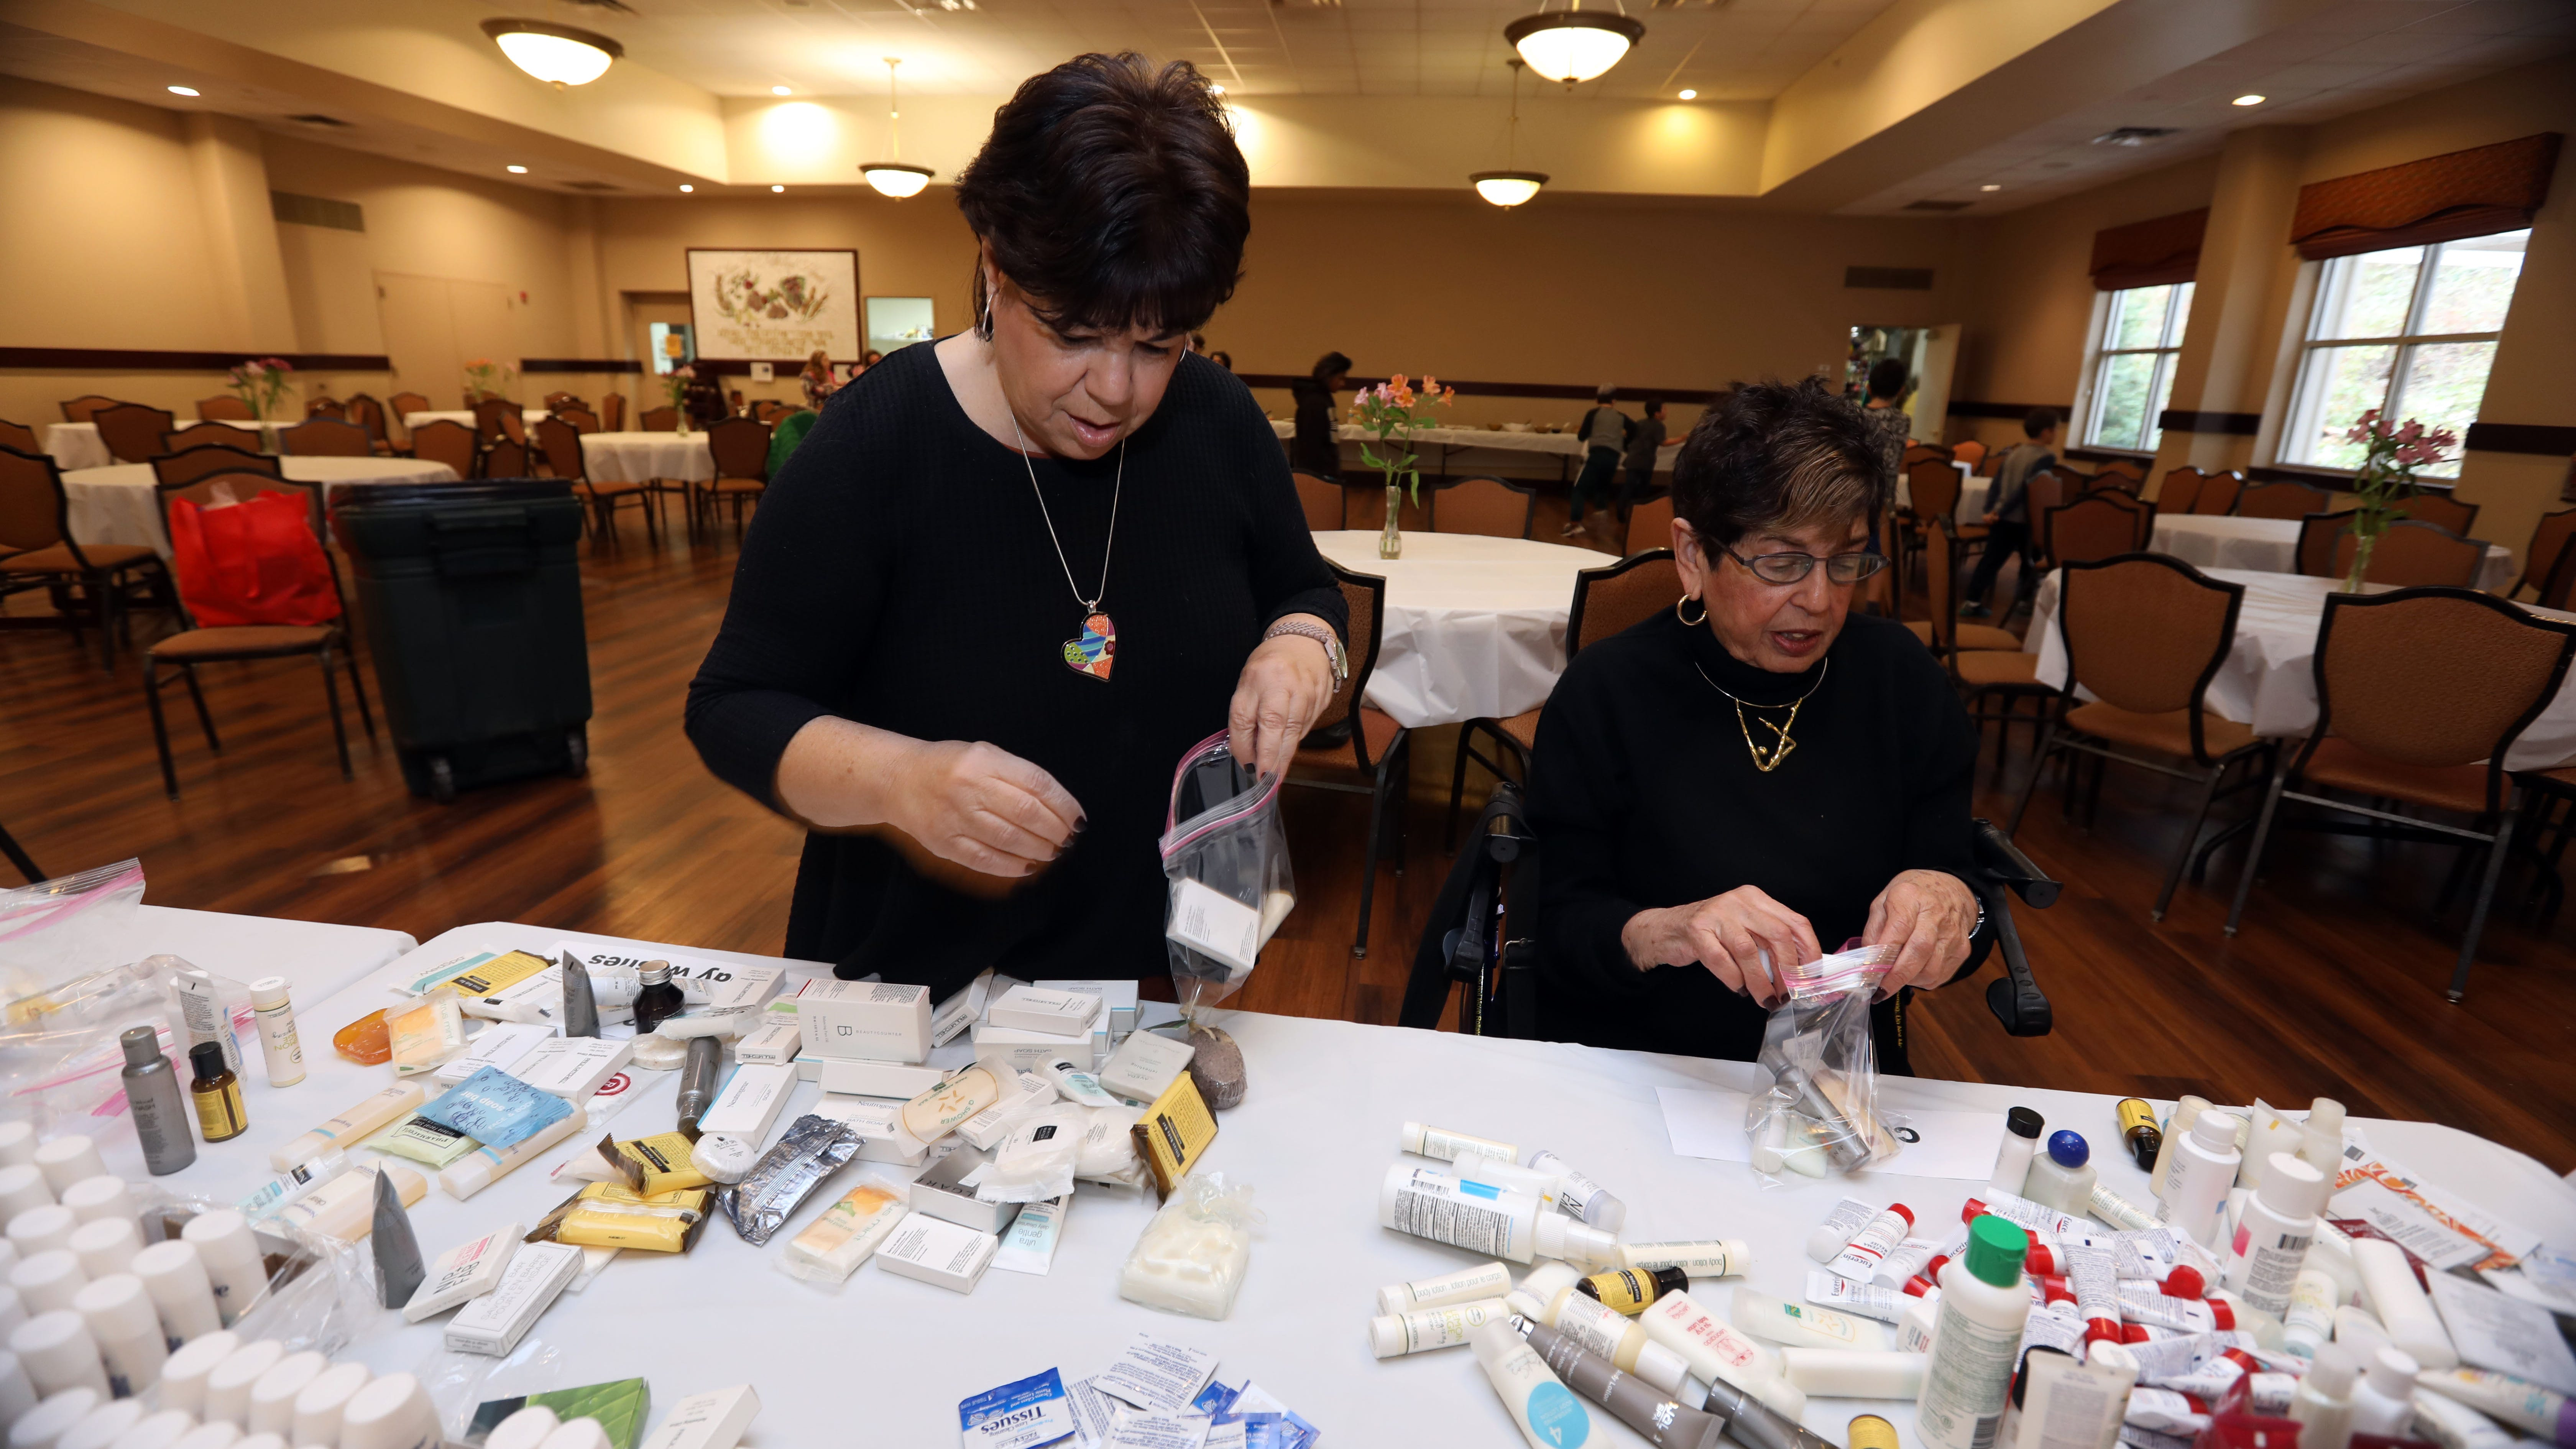 Video: Mitzvah Day at Orangetown Jewish Center